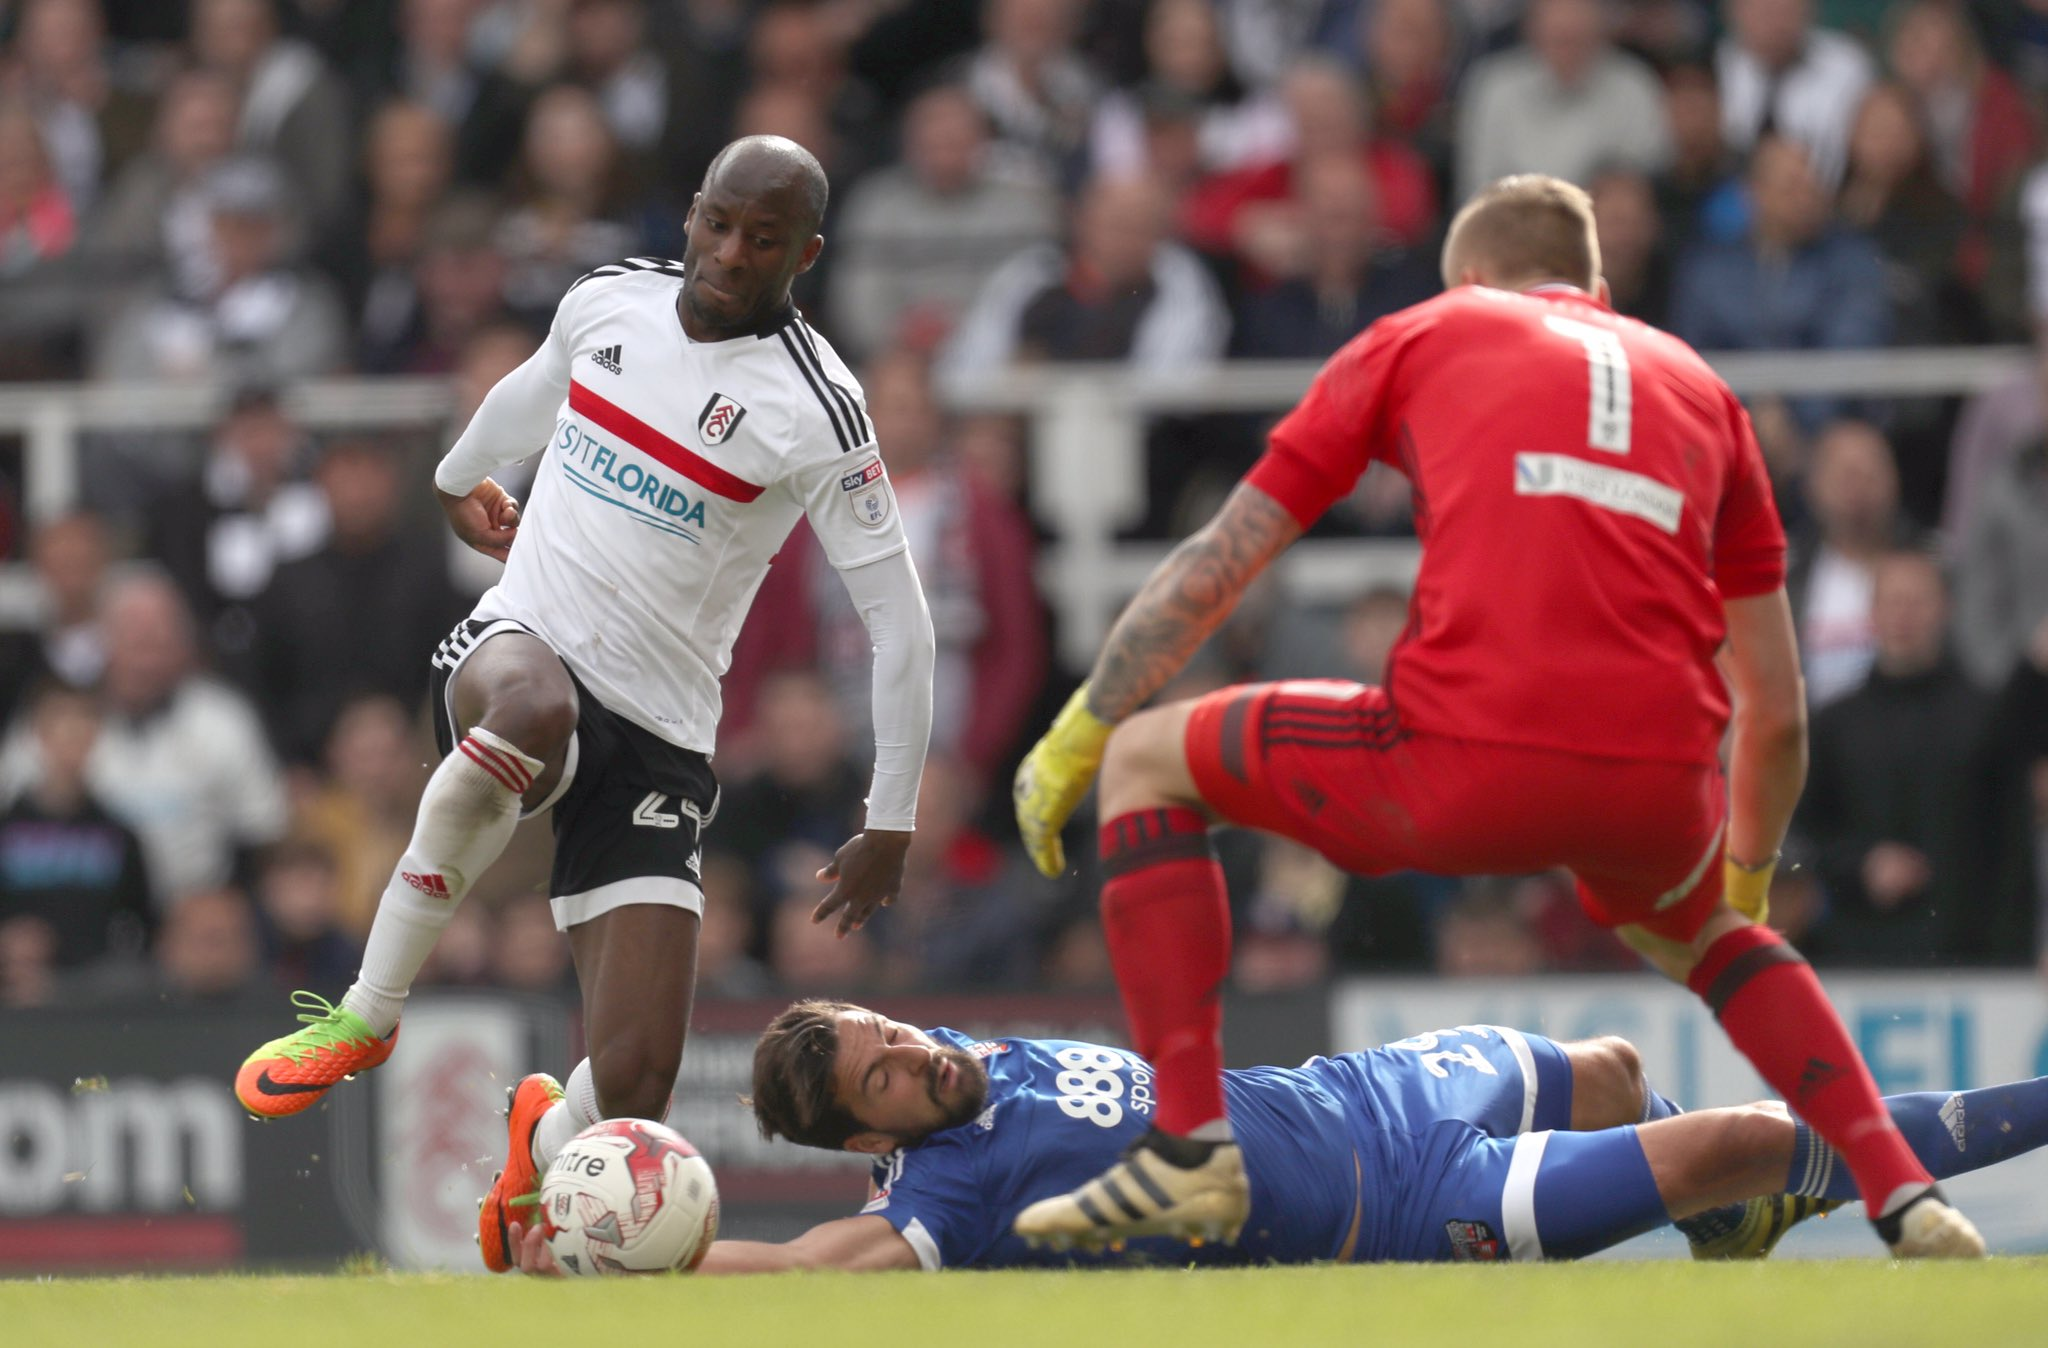 Aluko Shines As Fulham Claim EPL Play-Offs Ticket